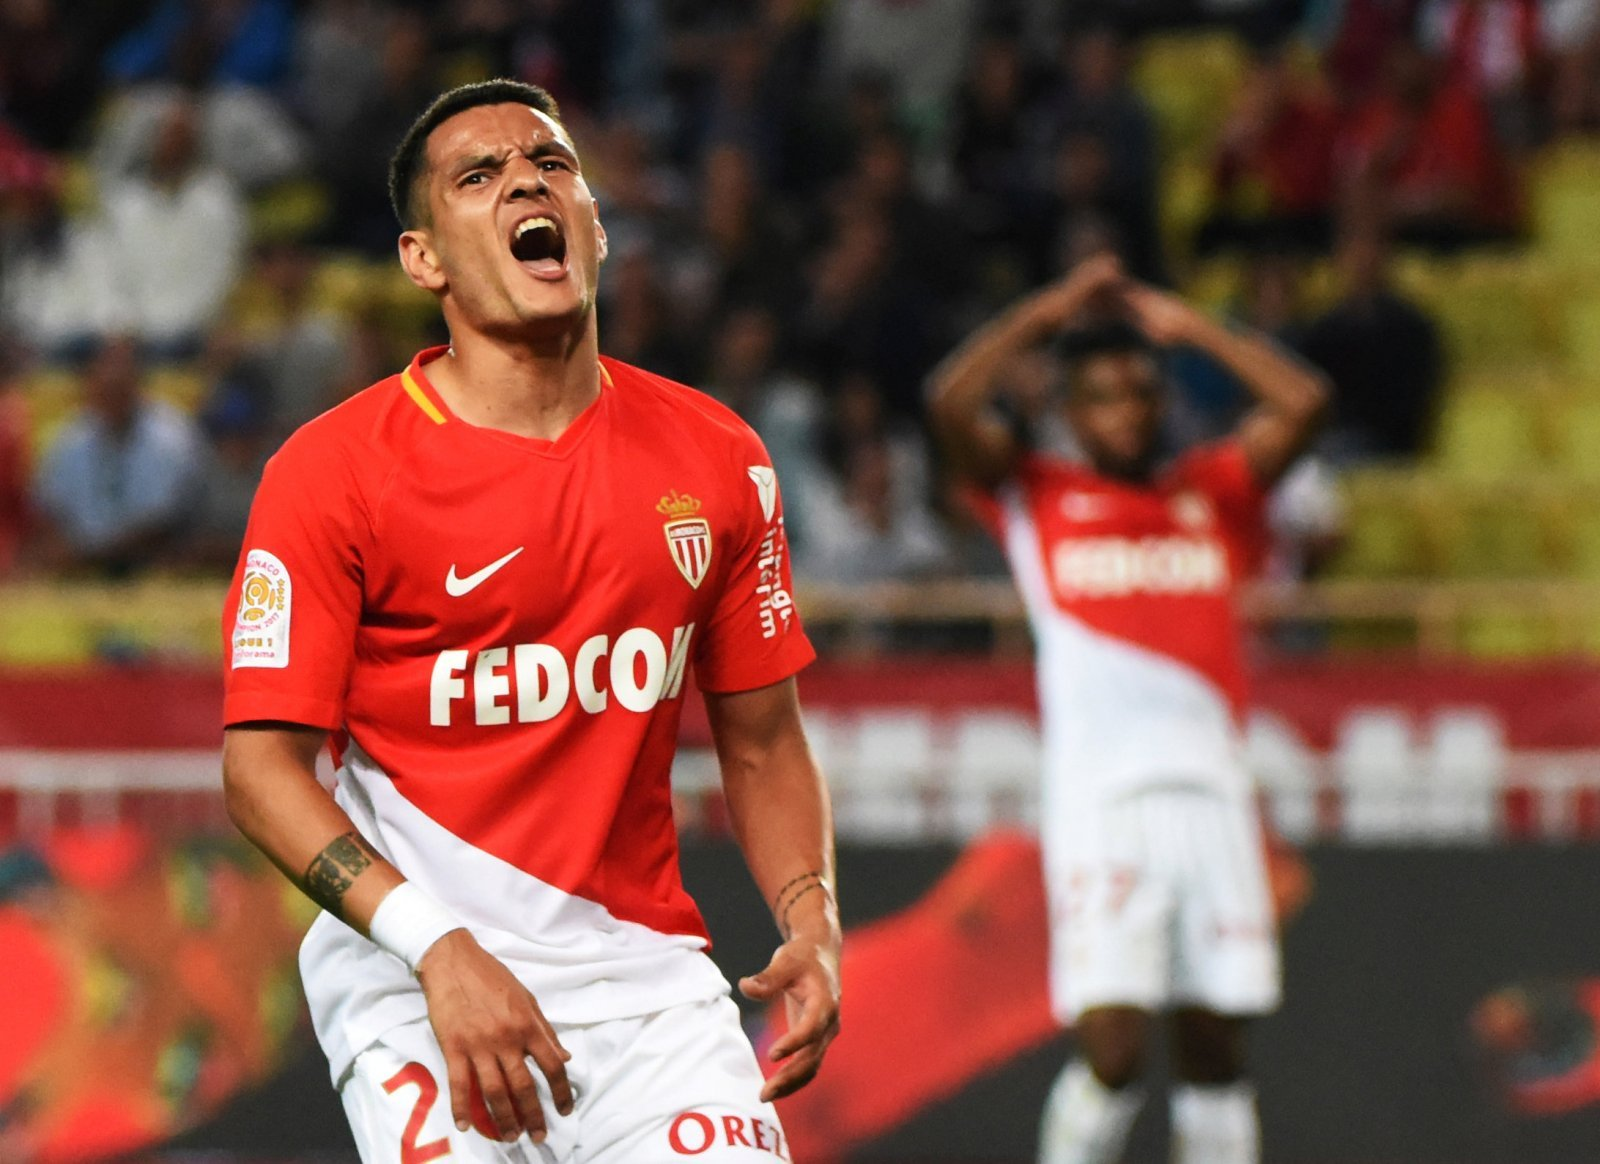 Rony Lopes an ideal addition to finish Liverpool's impressive recruitment drive